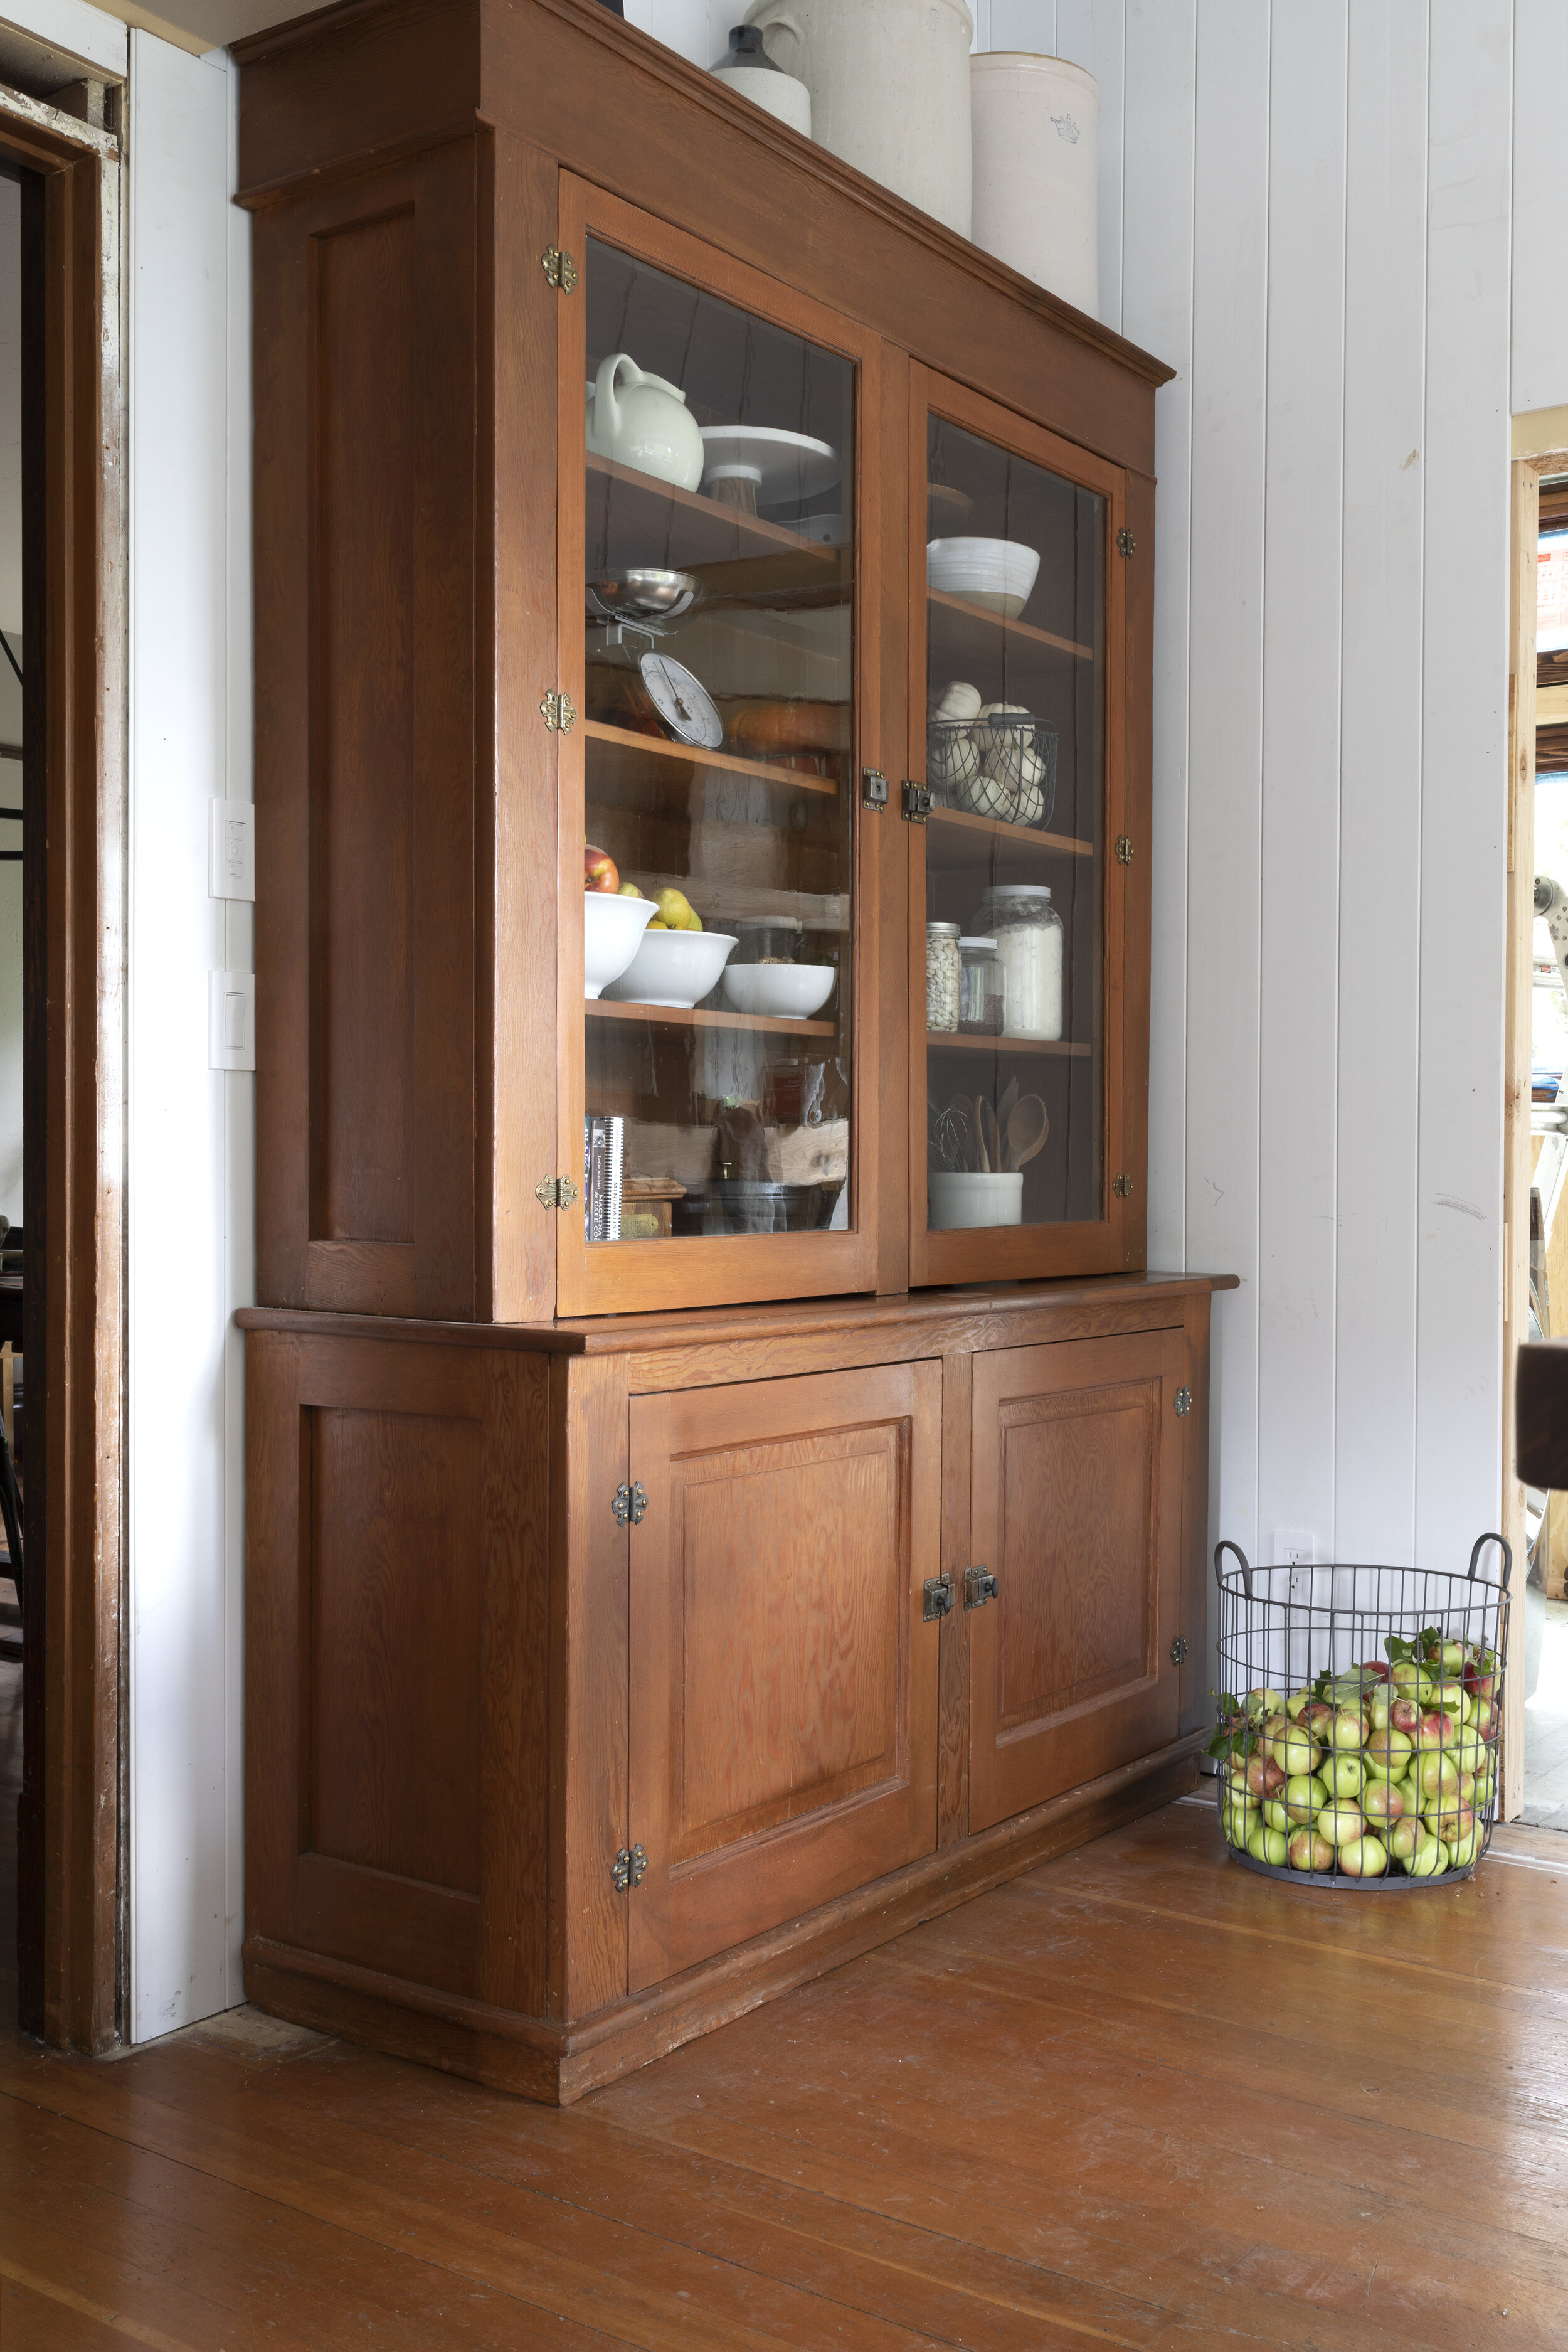 Incorporating Vintage Furniture Into a Kitchen Remodel — The ...